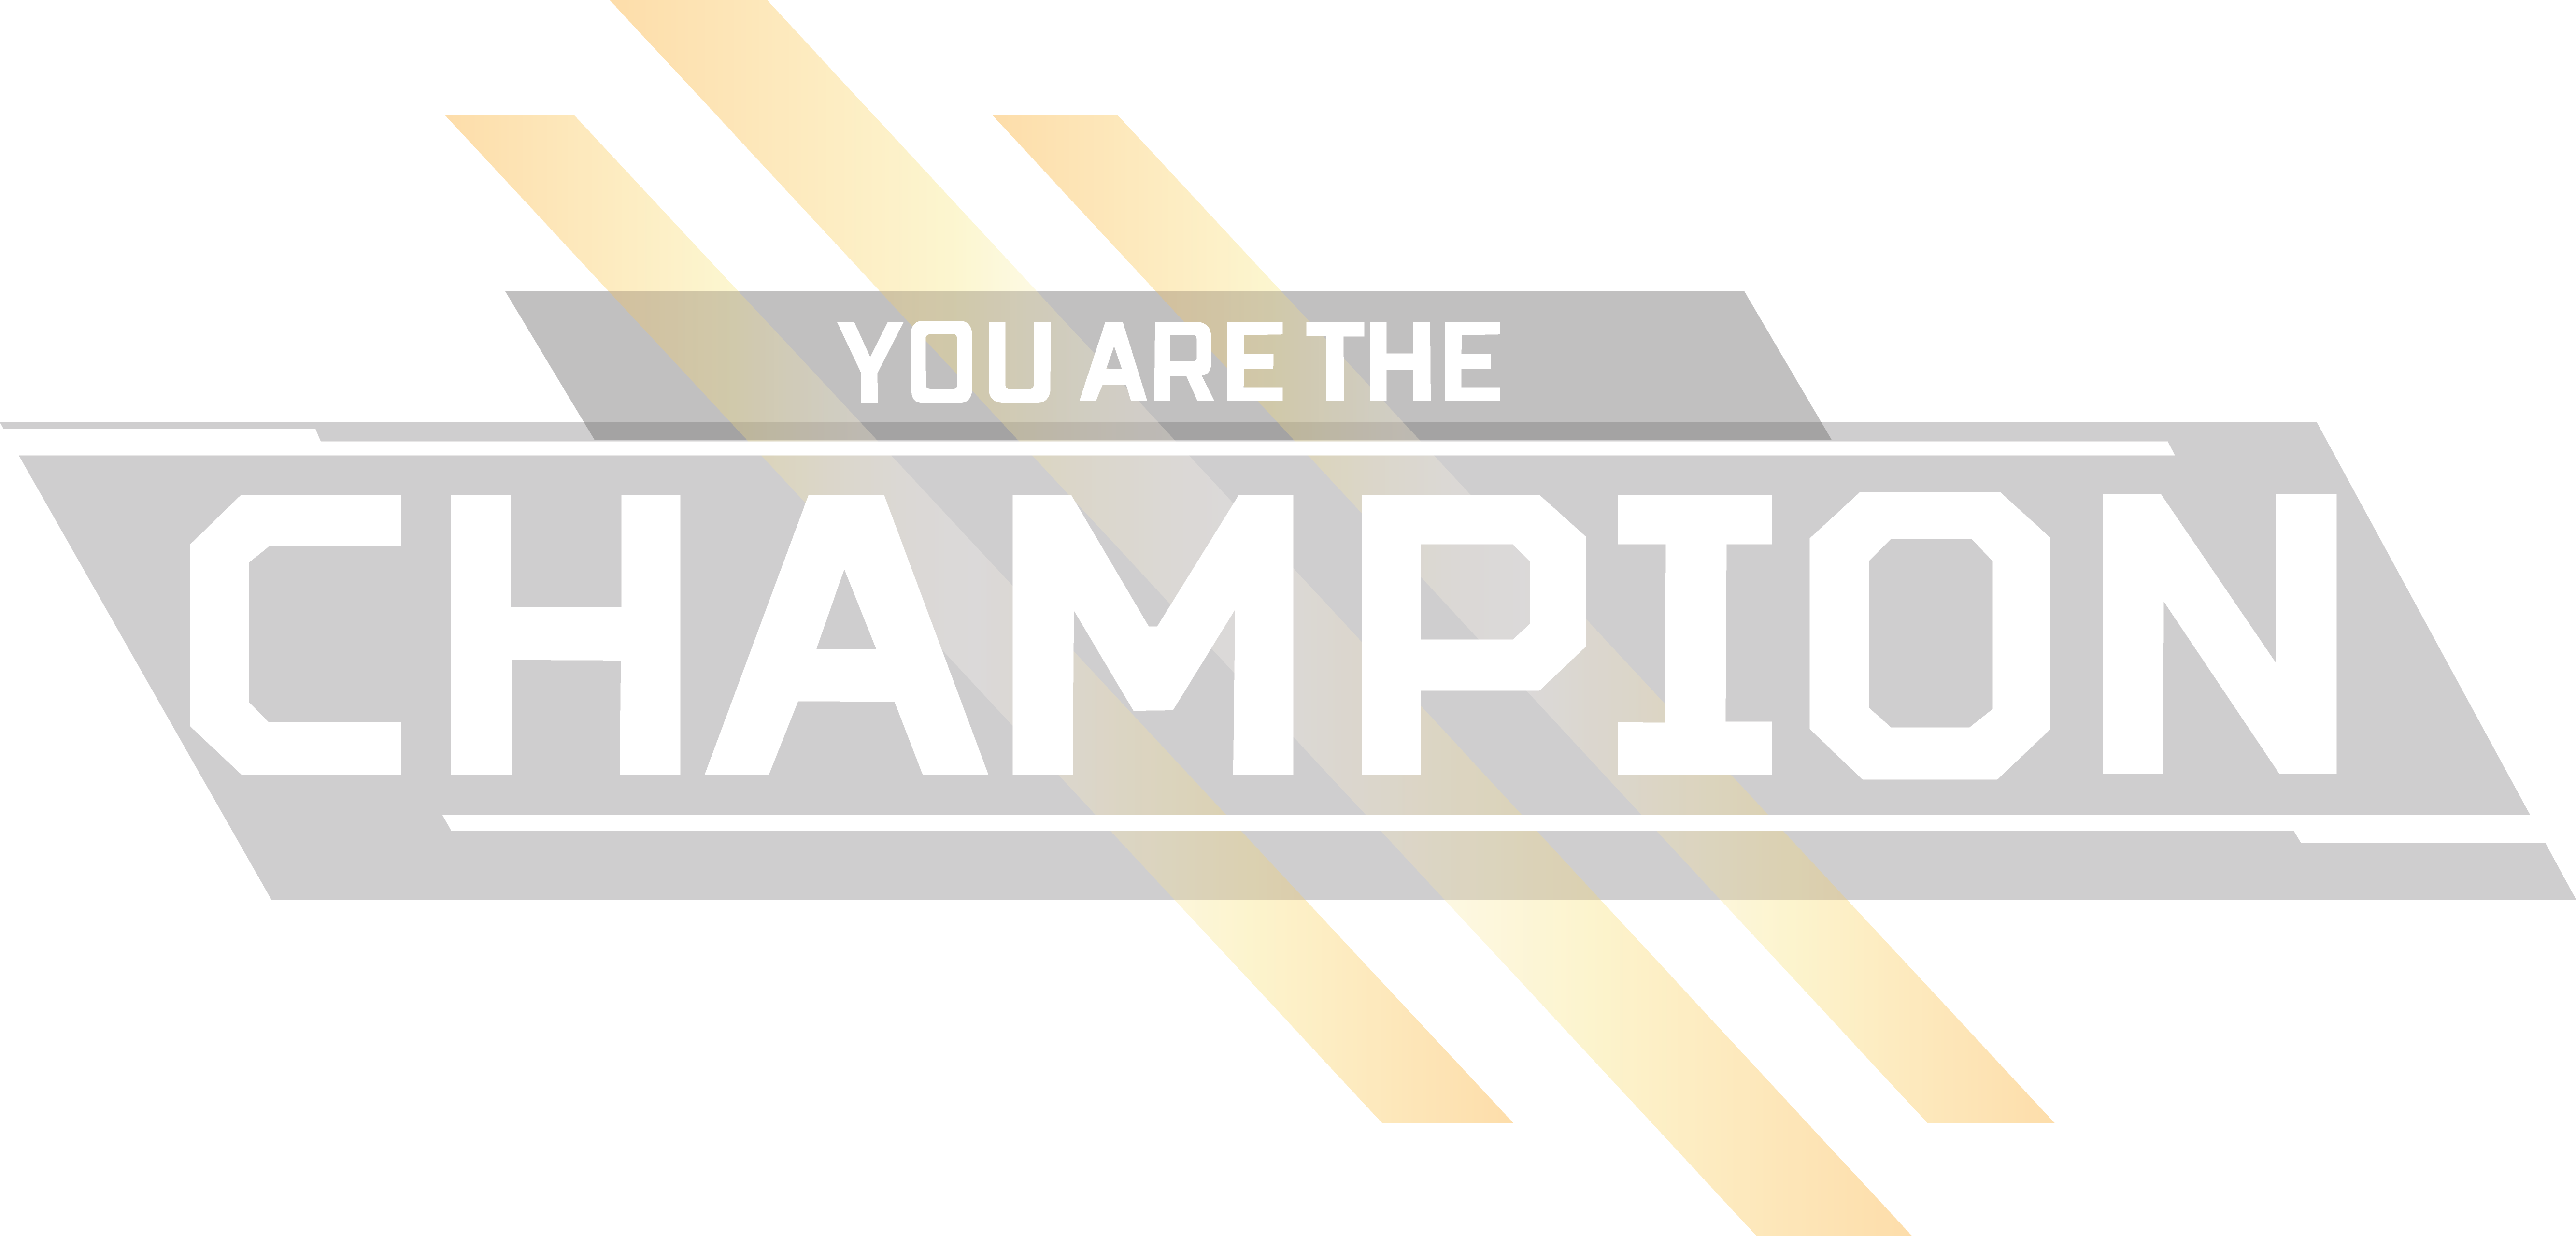 A PNG file for people to use : apexlegends.